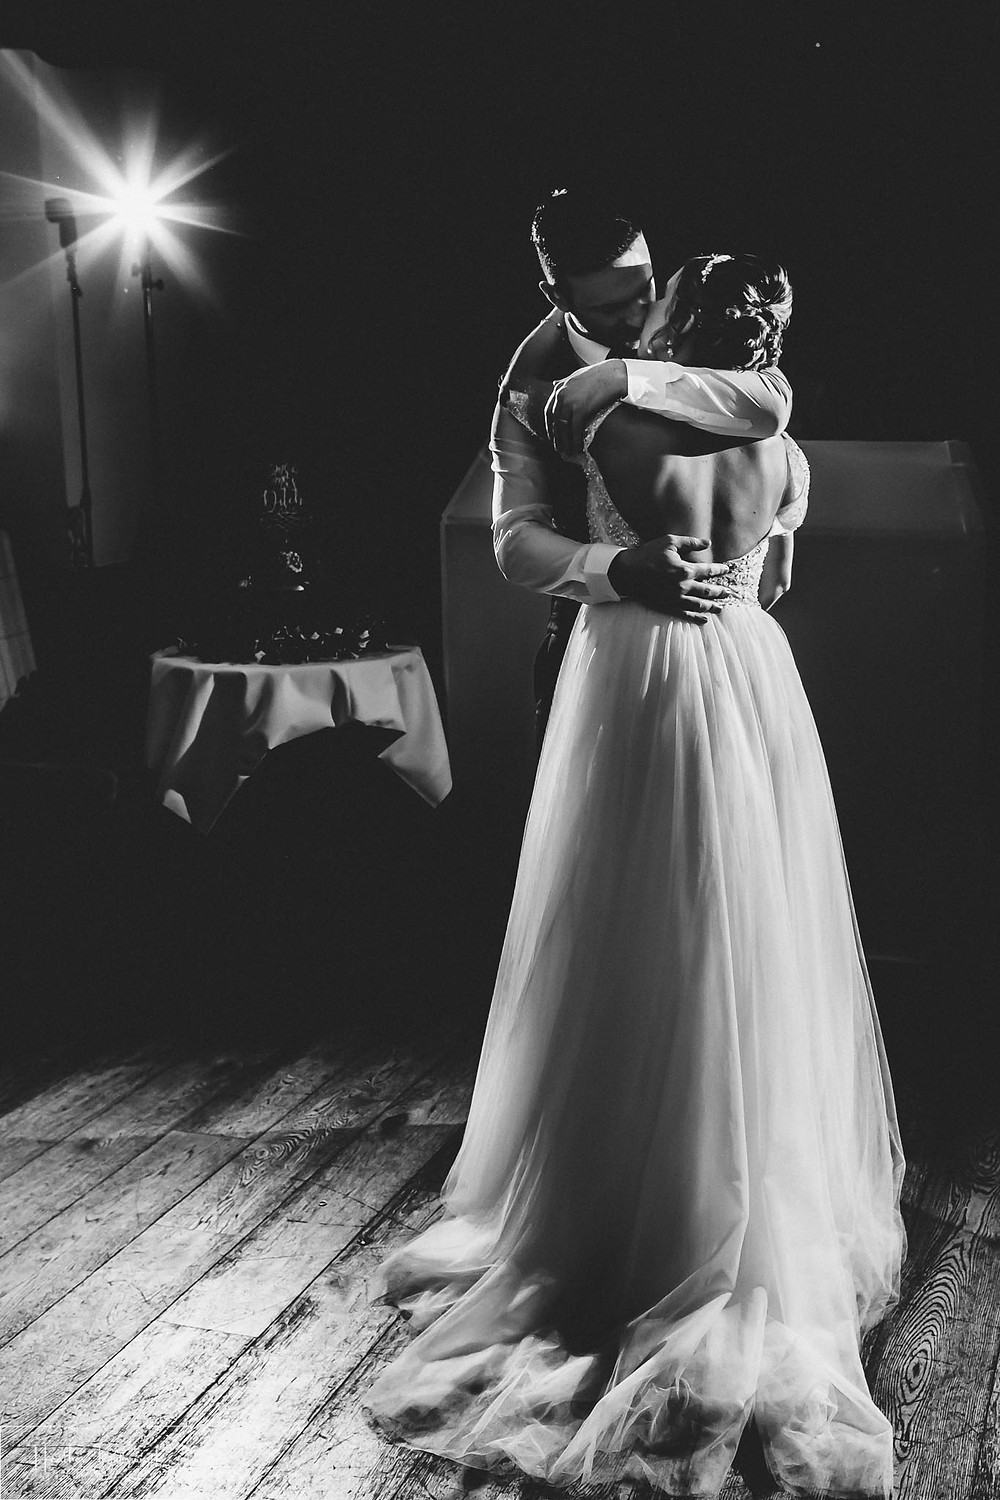 Bride and groom during their first dance after their wedding at The Woodman Inn in Thunderbridge near Leeds, Yorkshire